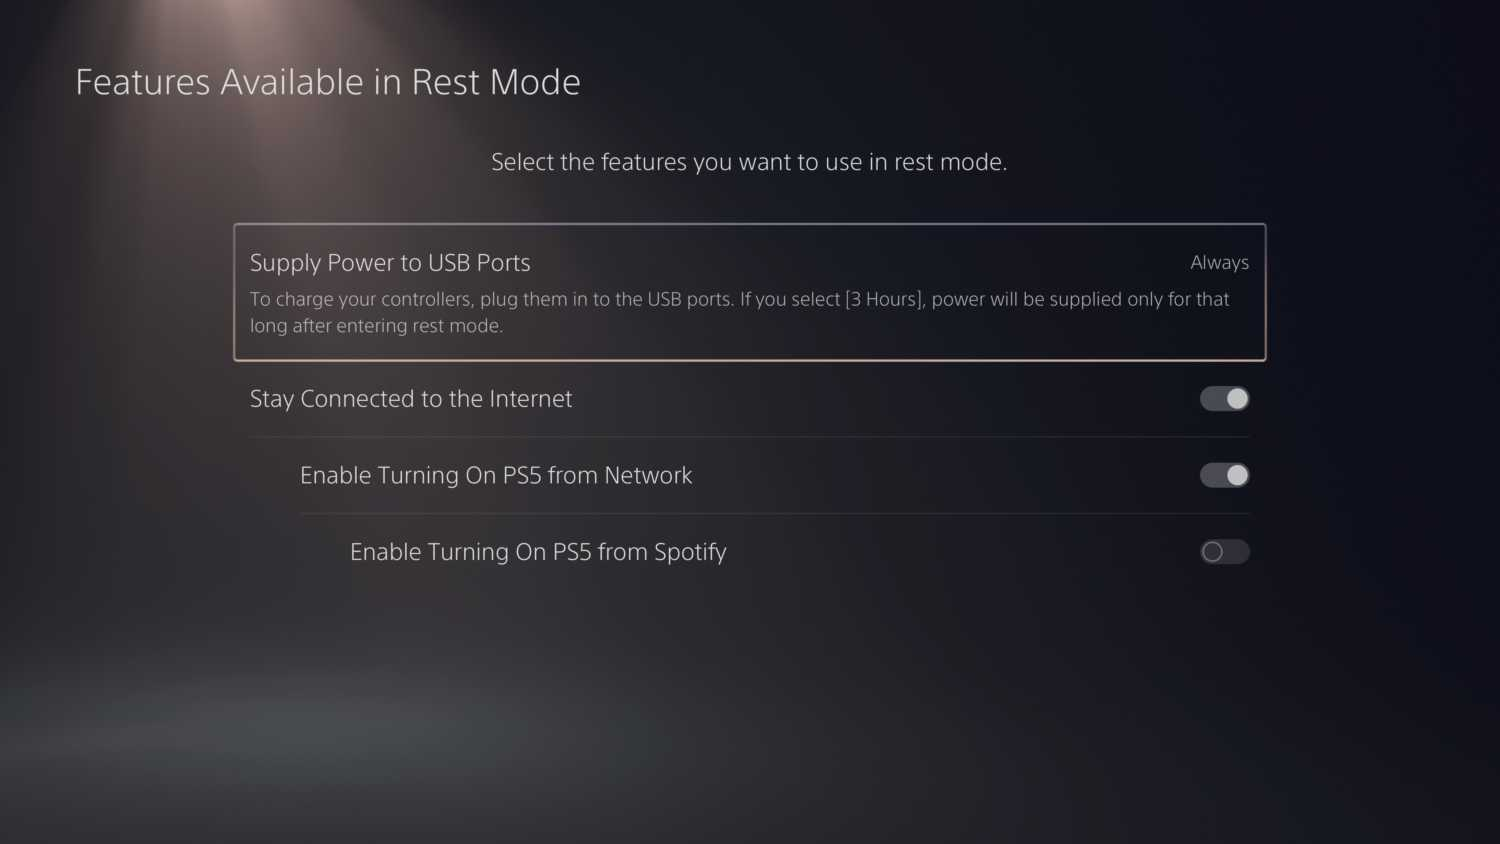 Power USB Ports in rest mode